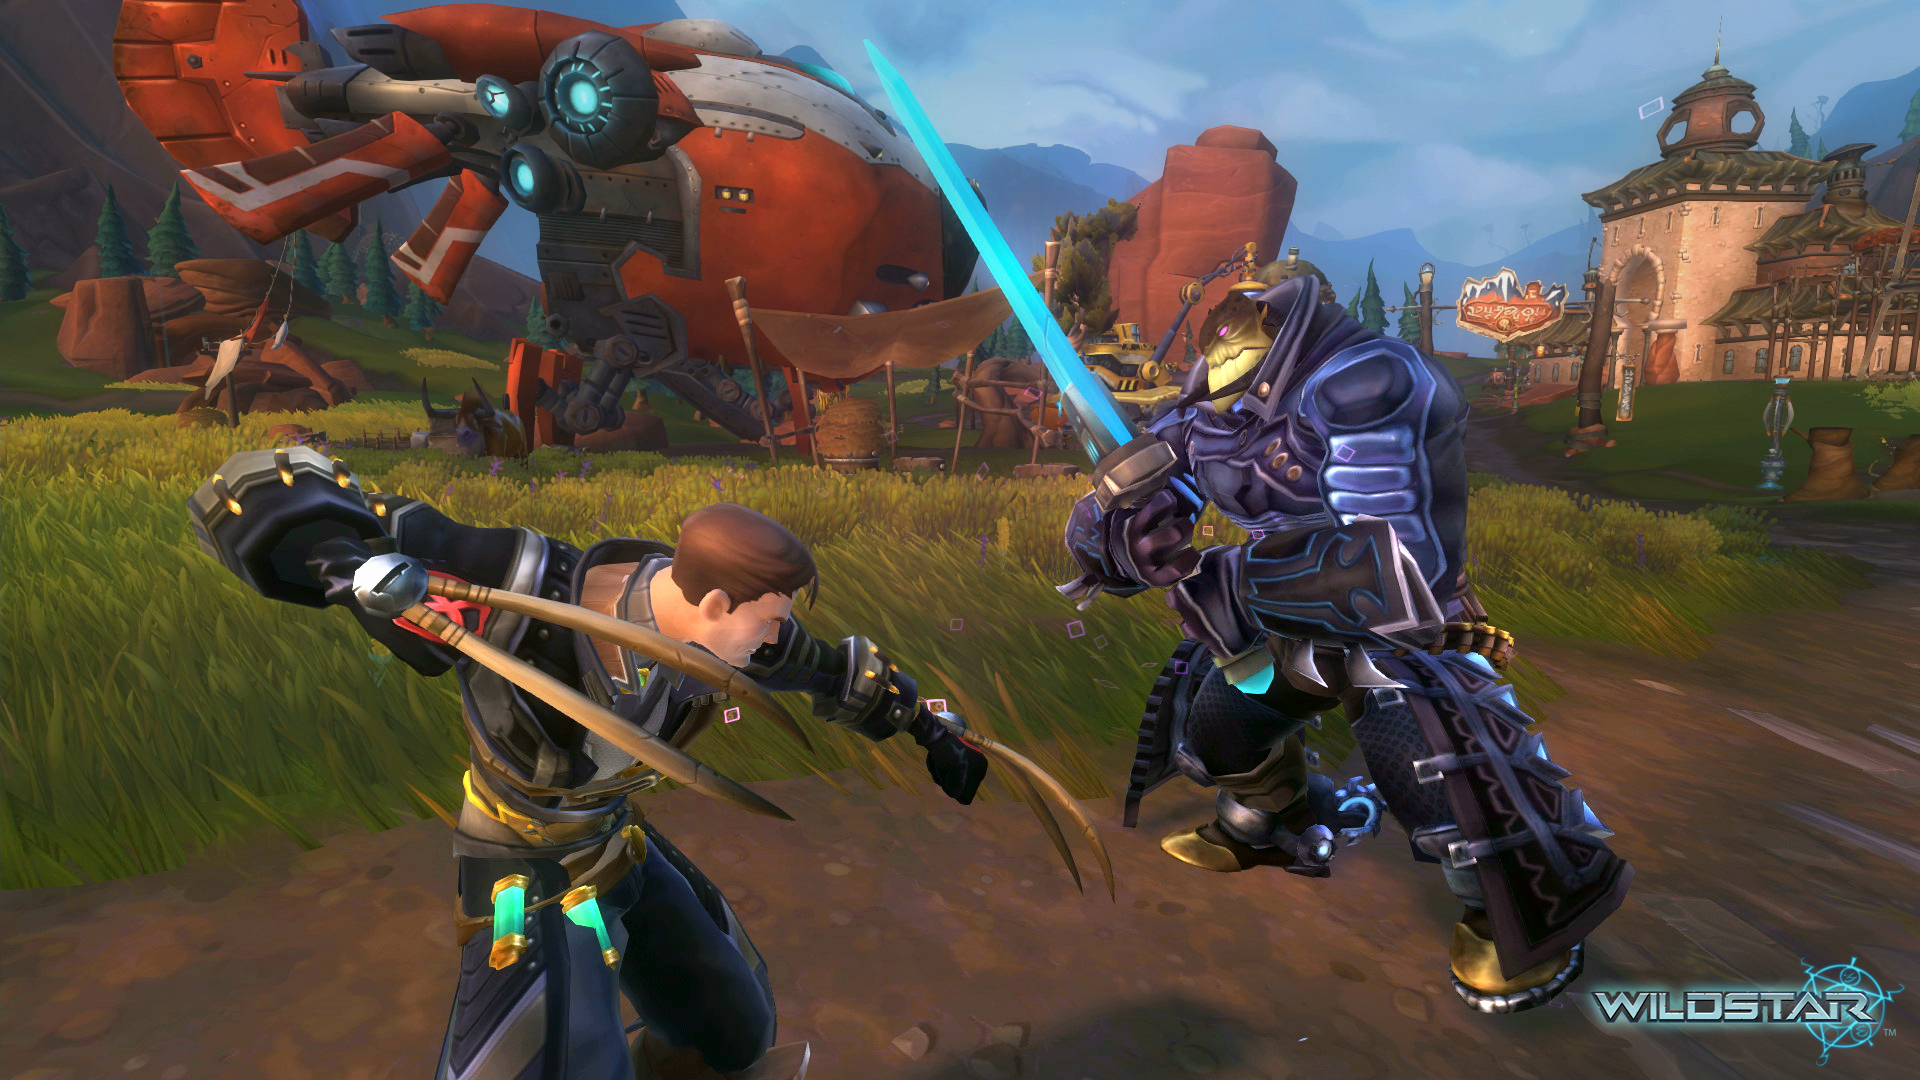 wildstar free to play beta key 3.jpg